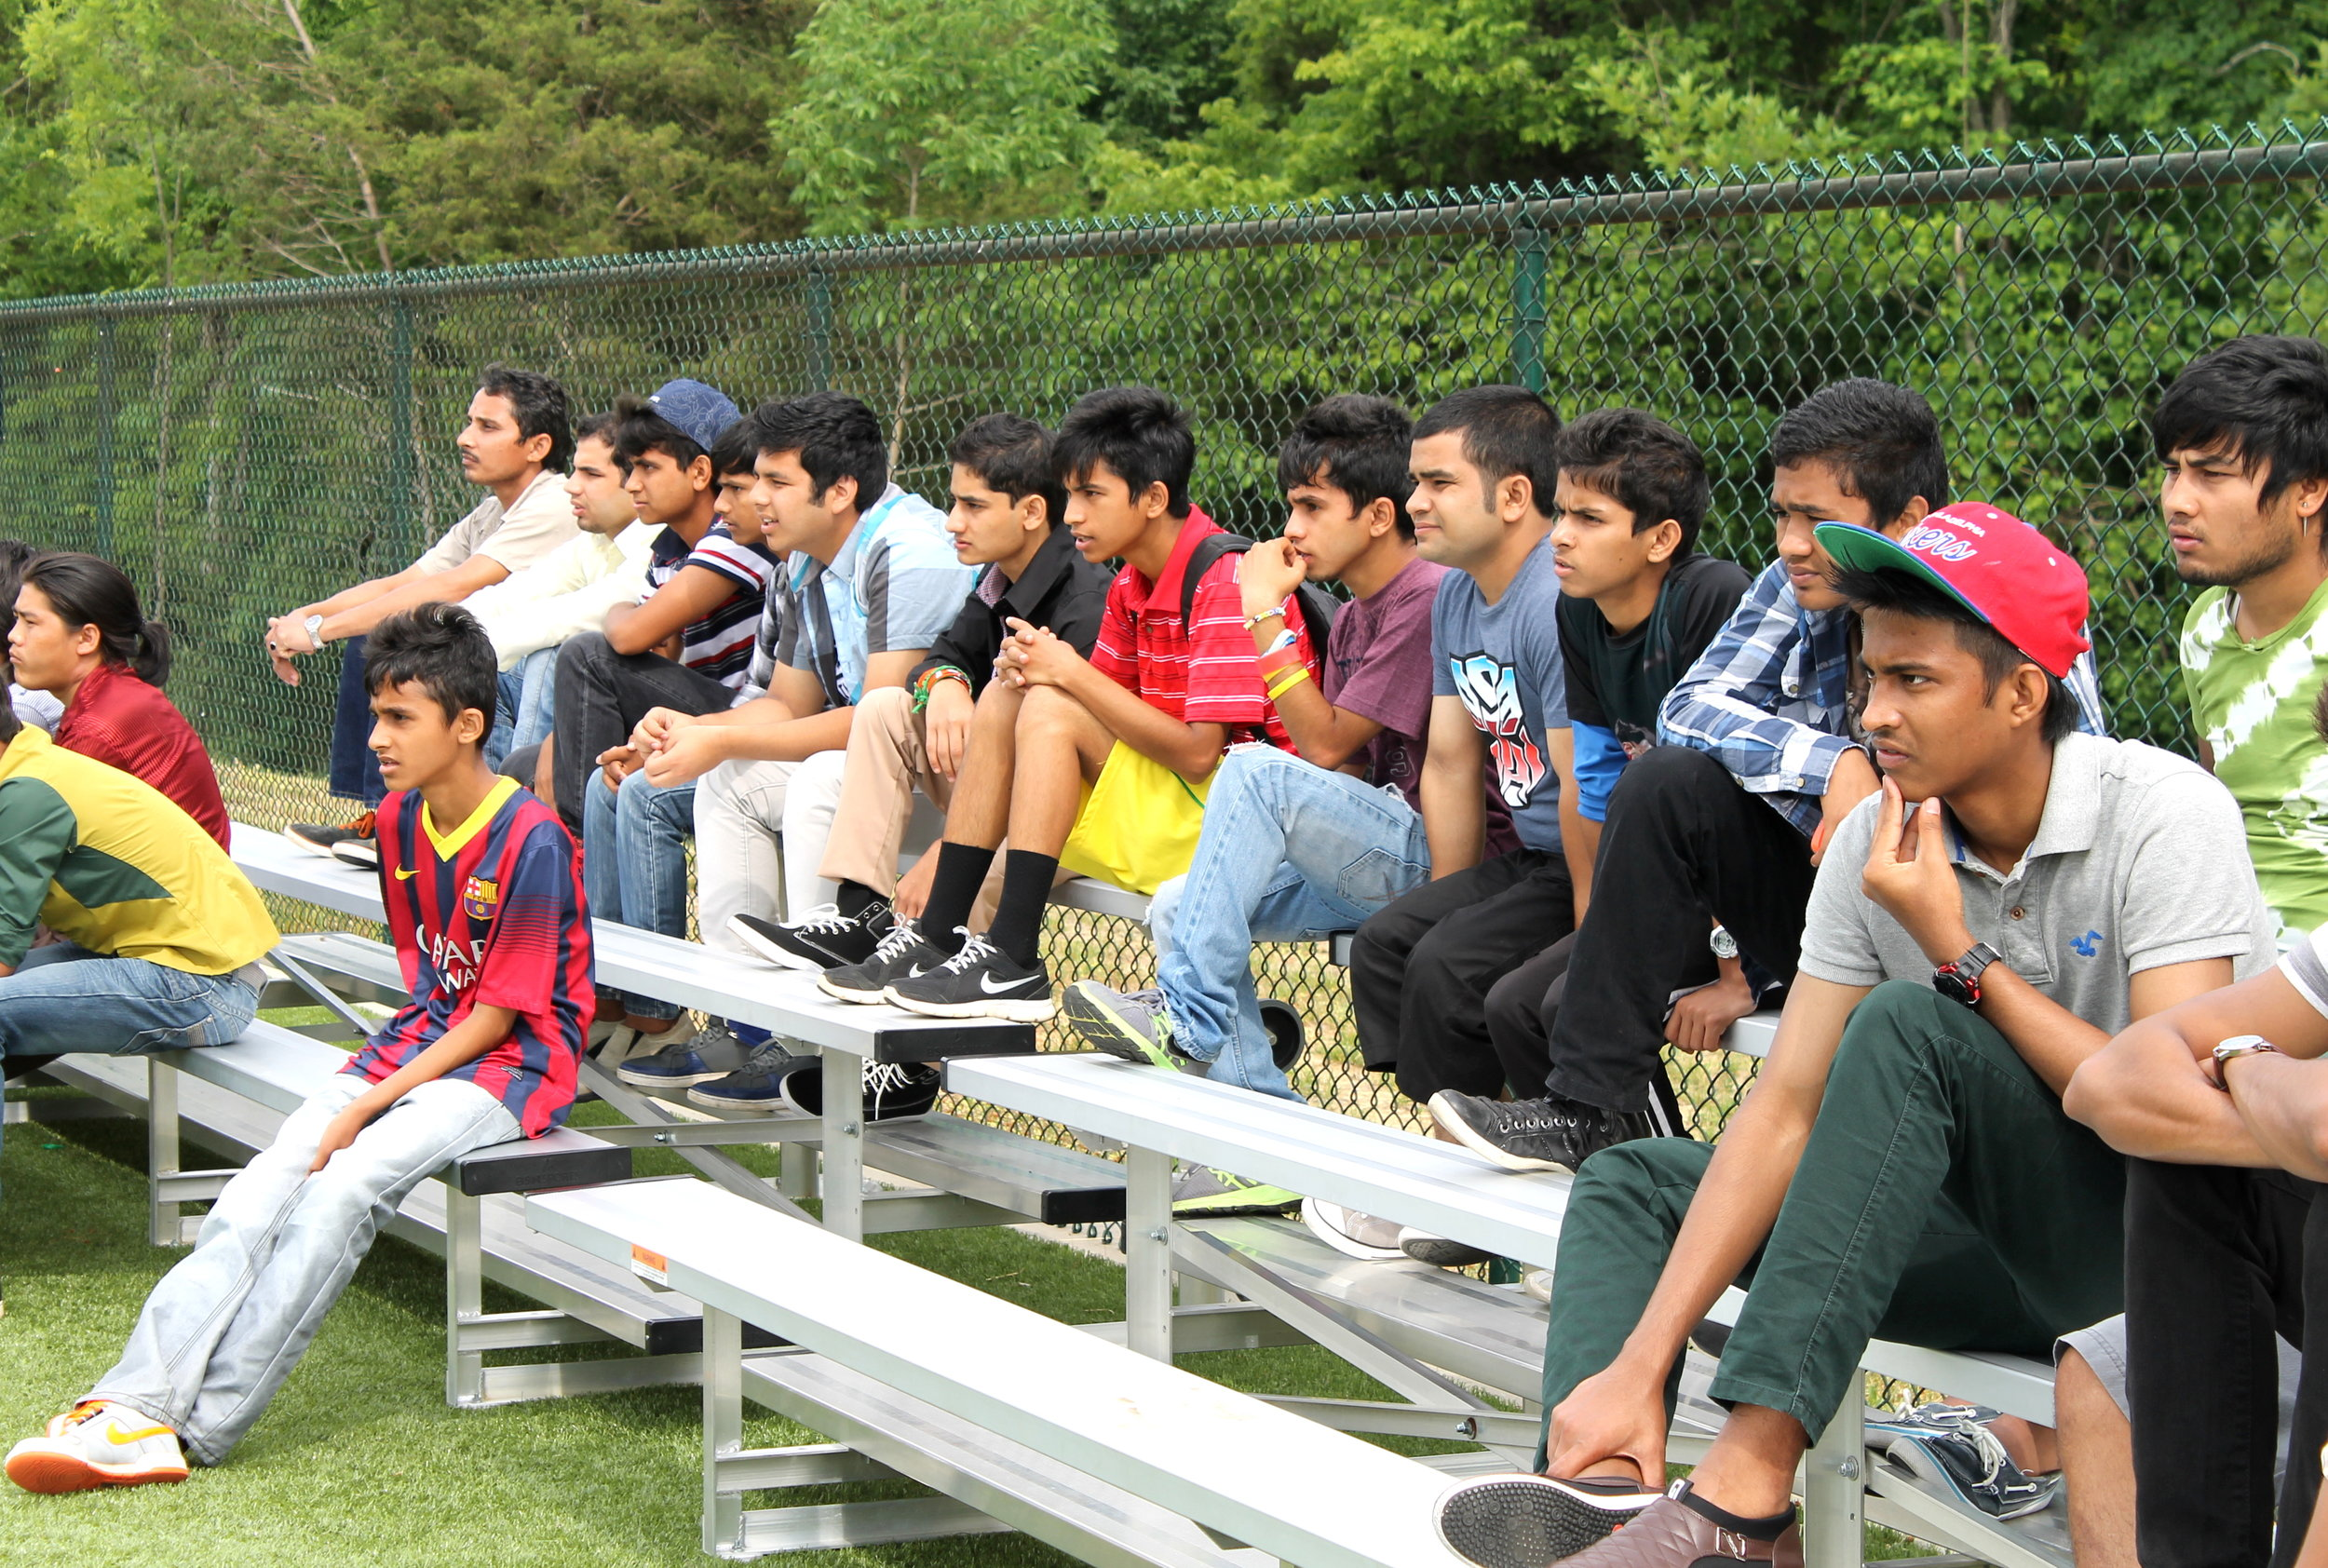 Bhut soccer tournament Charlotte 2014.JPG